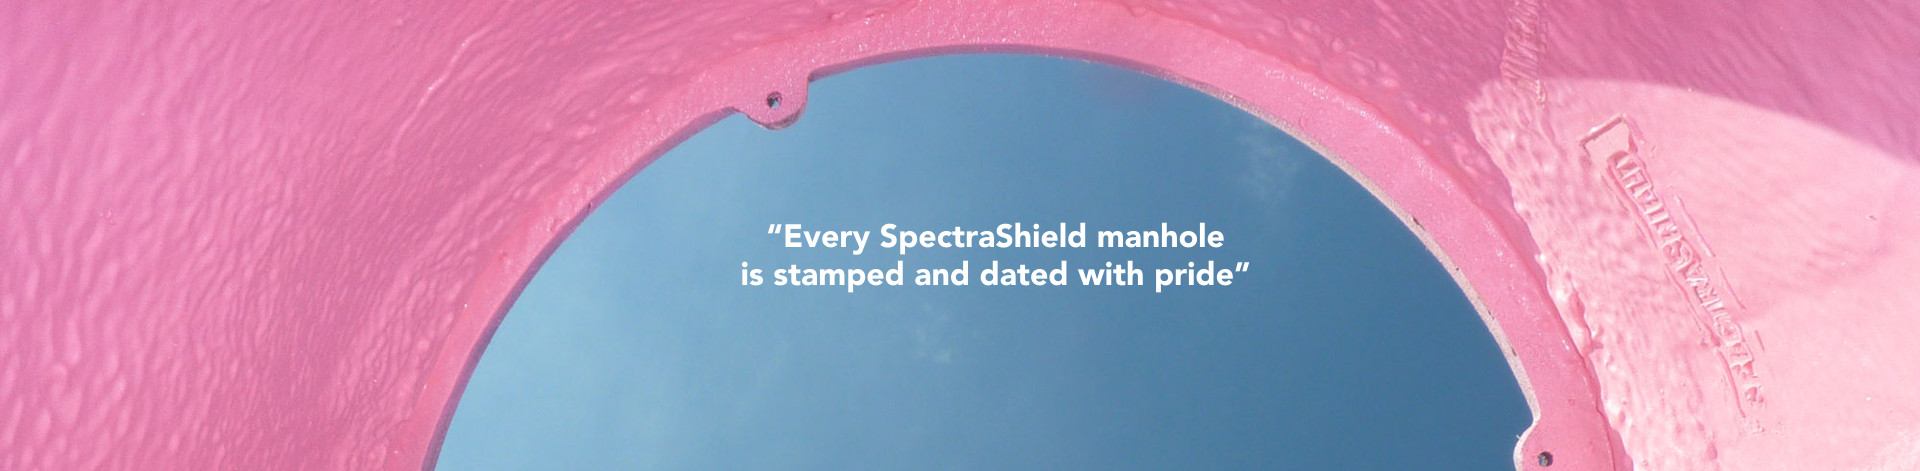 SpectraShield manhole stamp